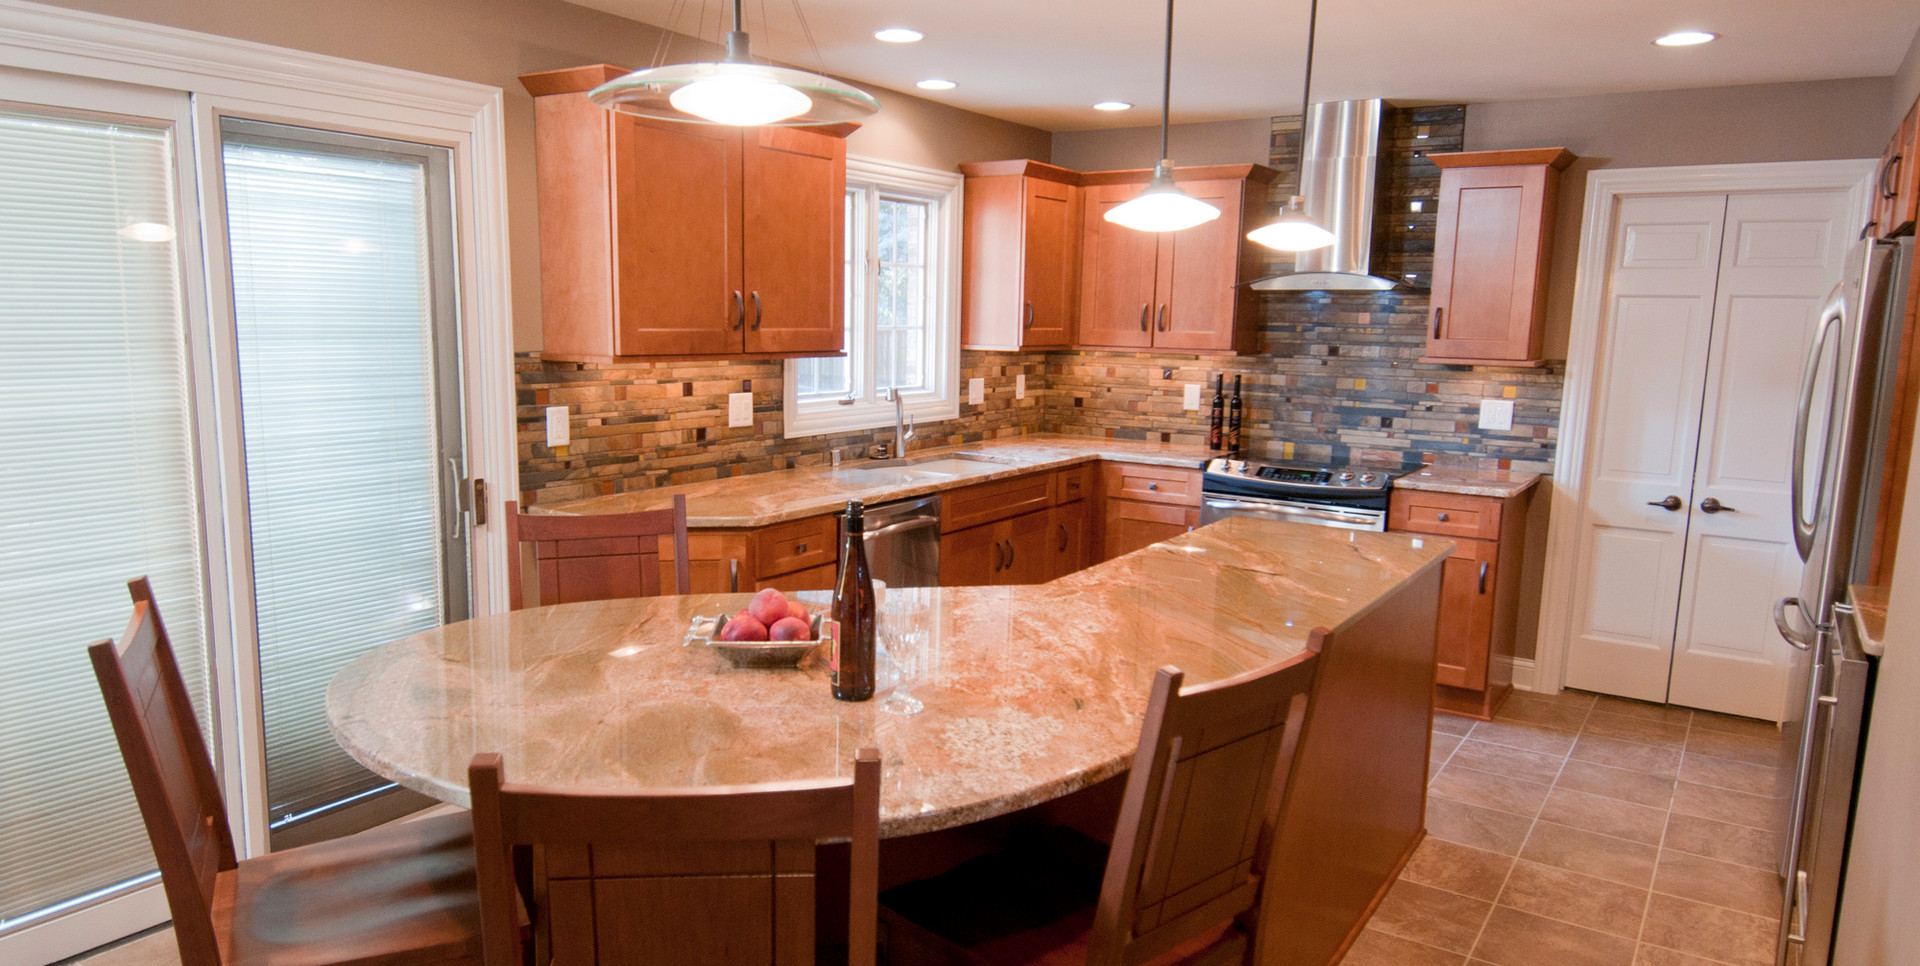 Wauwatosa Transitional Kitchen - After